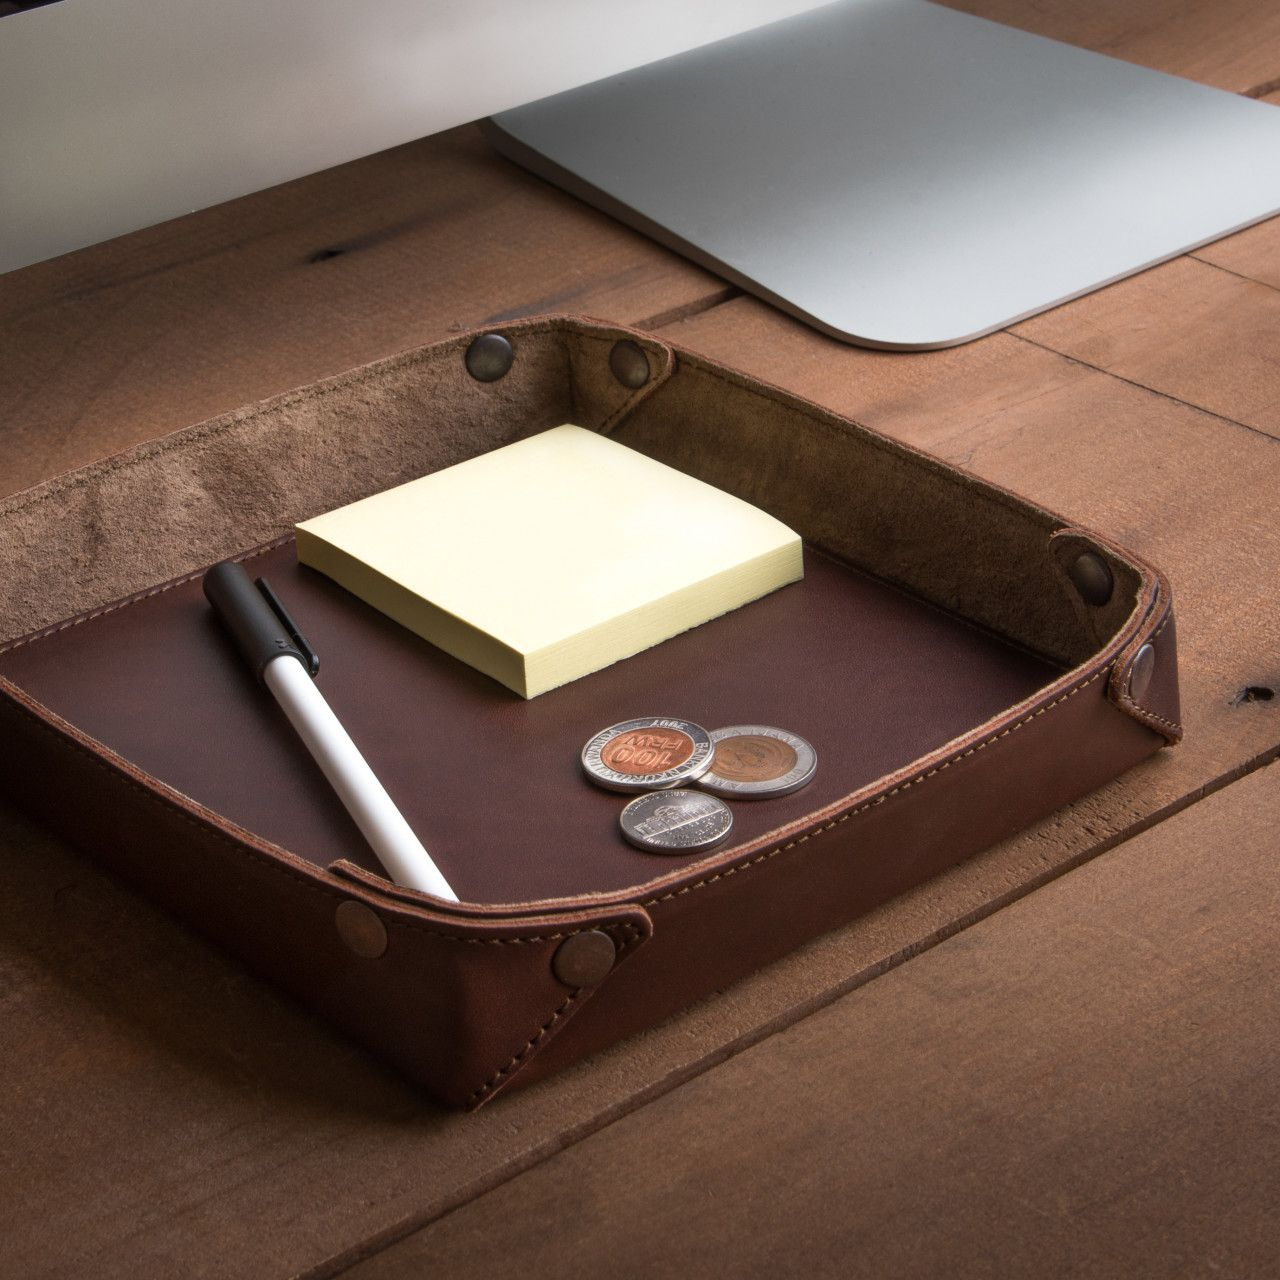 In the inside of the leather valet tray in chestnut leather we can see a pen, notebook and money